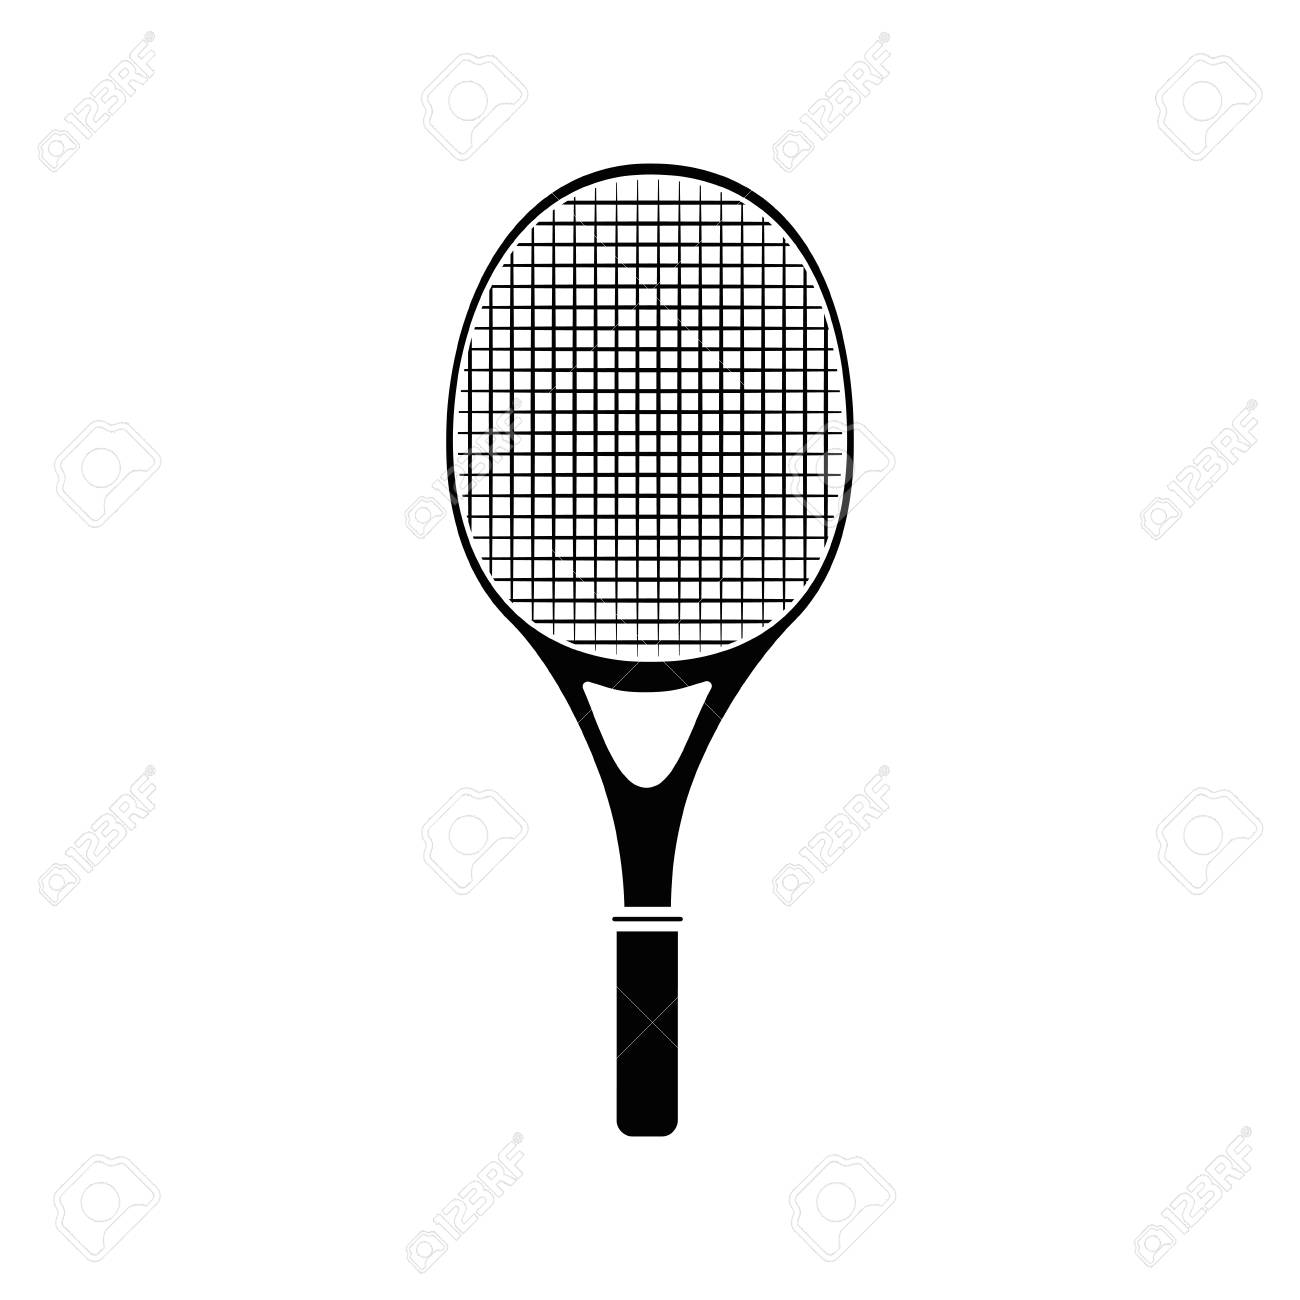 Tennis Racket Isolated Icon Vector Illustration Graphic Design